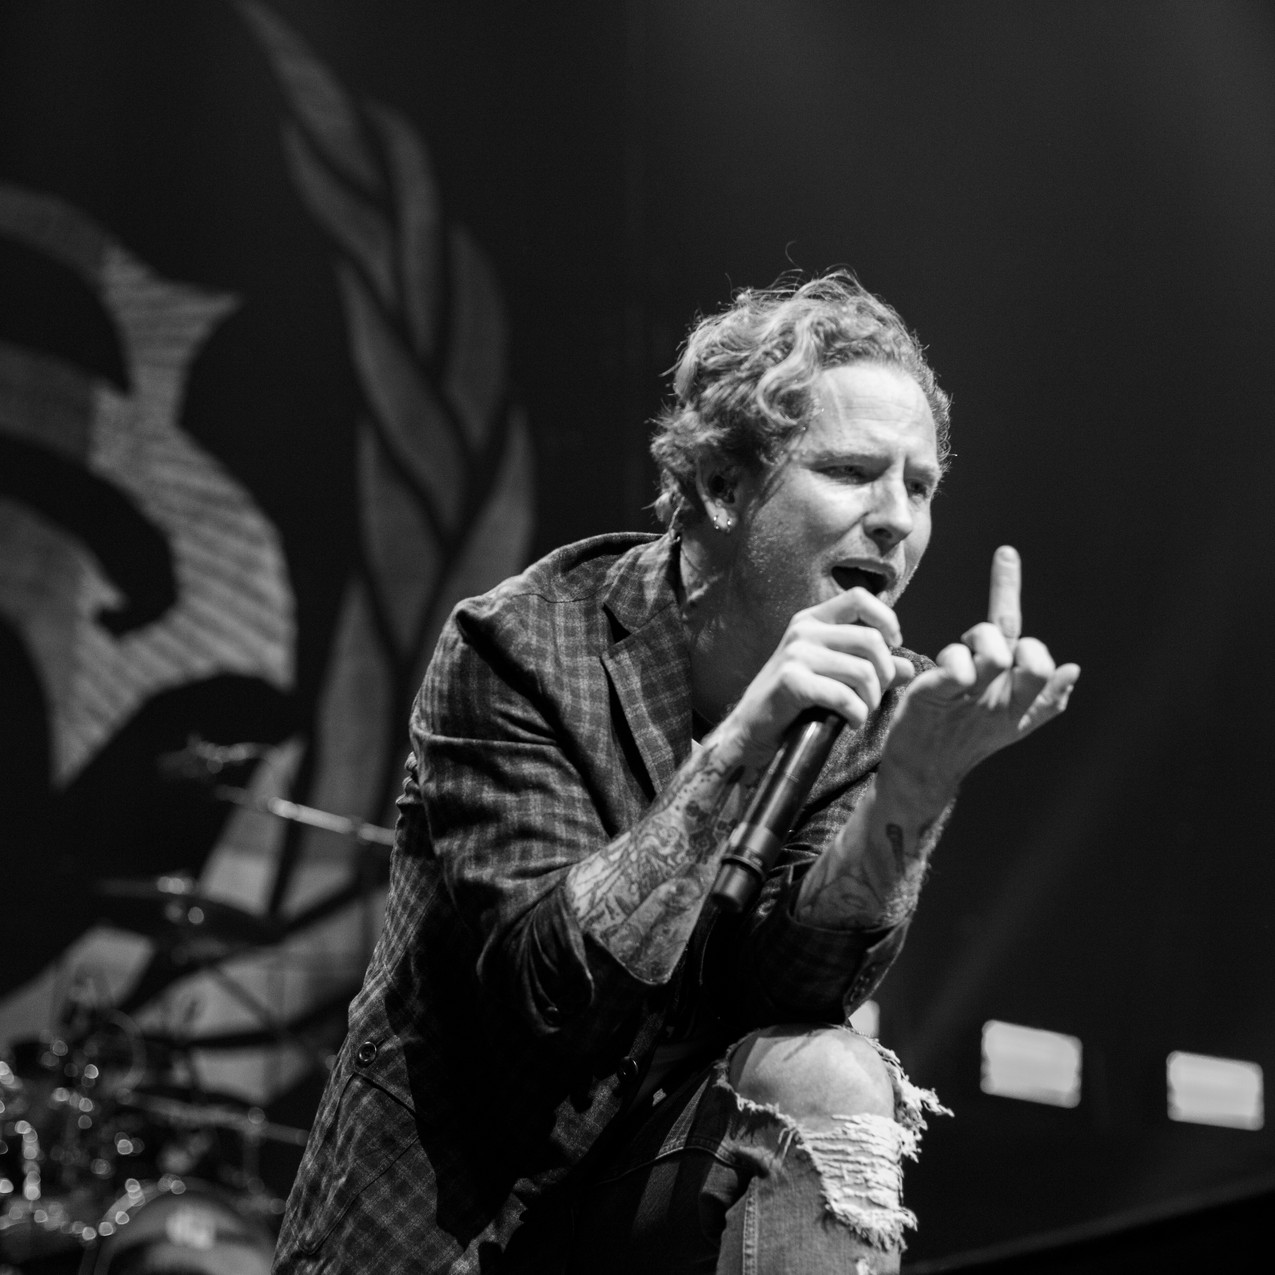 Stone Sour, Photo by Gili Dailes